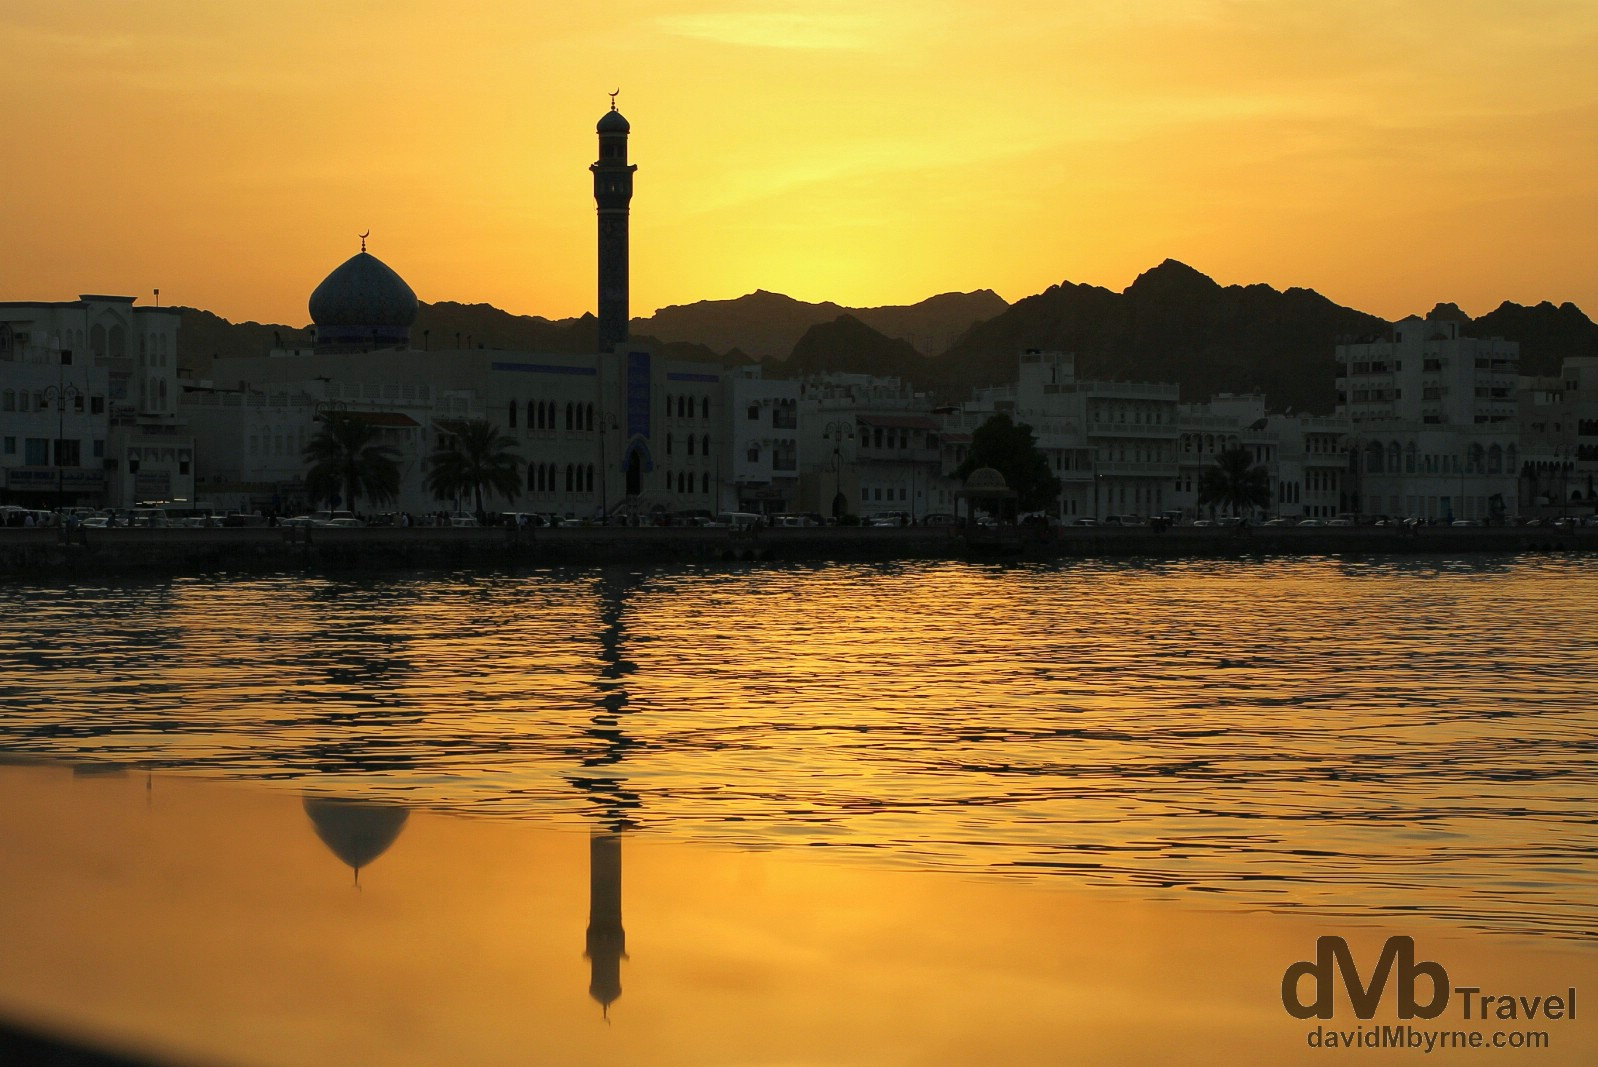 Sunset on Mutrah Corniche in Muscat, Oman. April 25th, 2014.